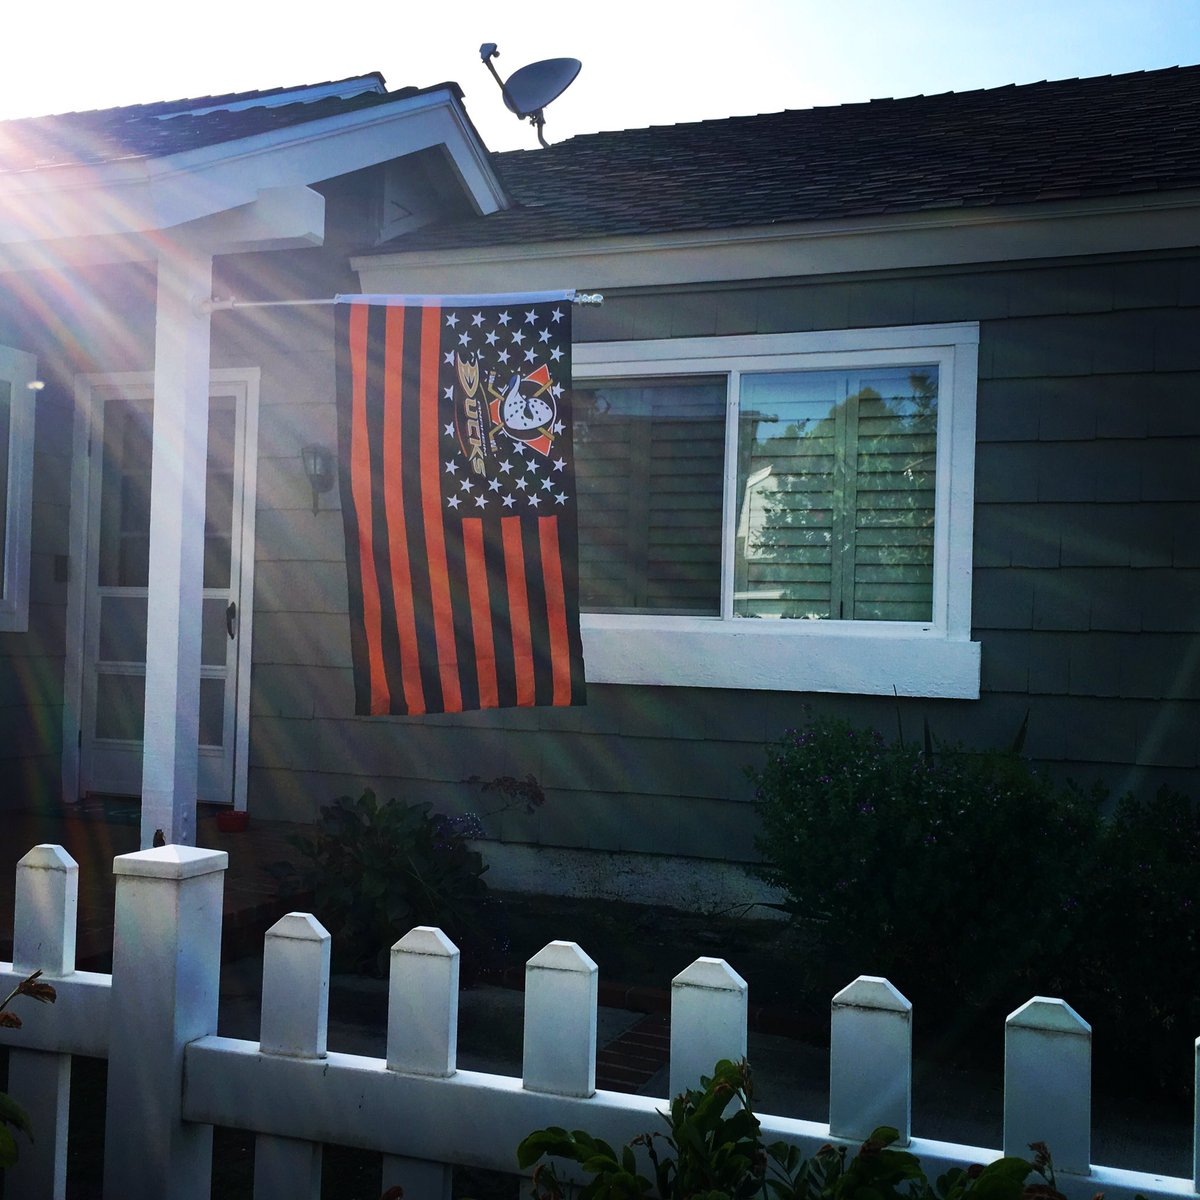 Our neighbor just put up a new Hawks flag...so I put up an even bigger @AnaheimDucks flag at our house! #NHLDucks https://t.co/7fv9S8mdWf